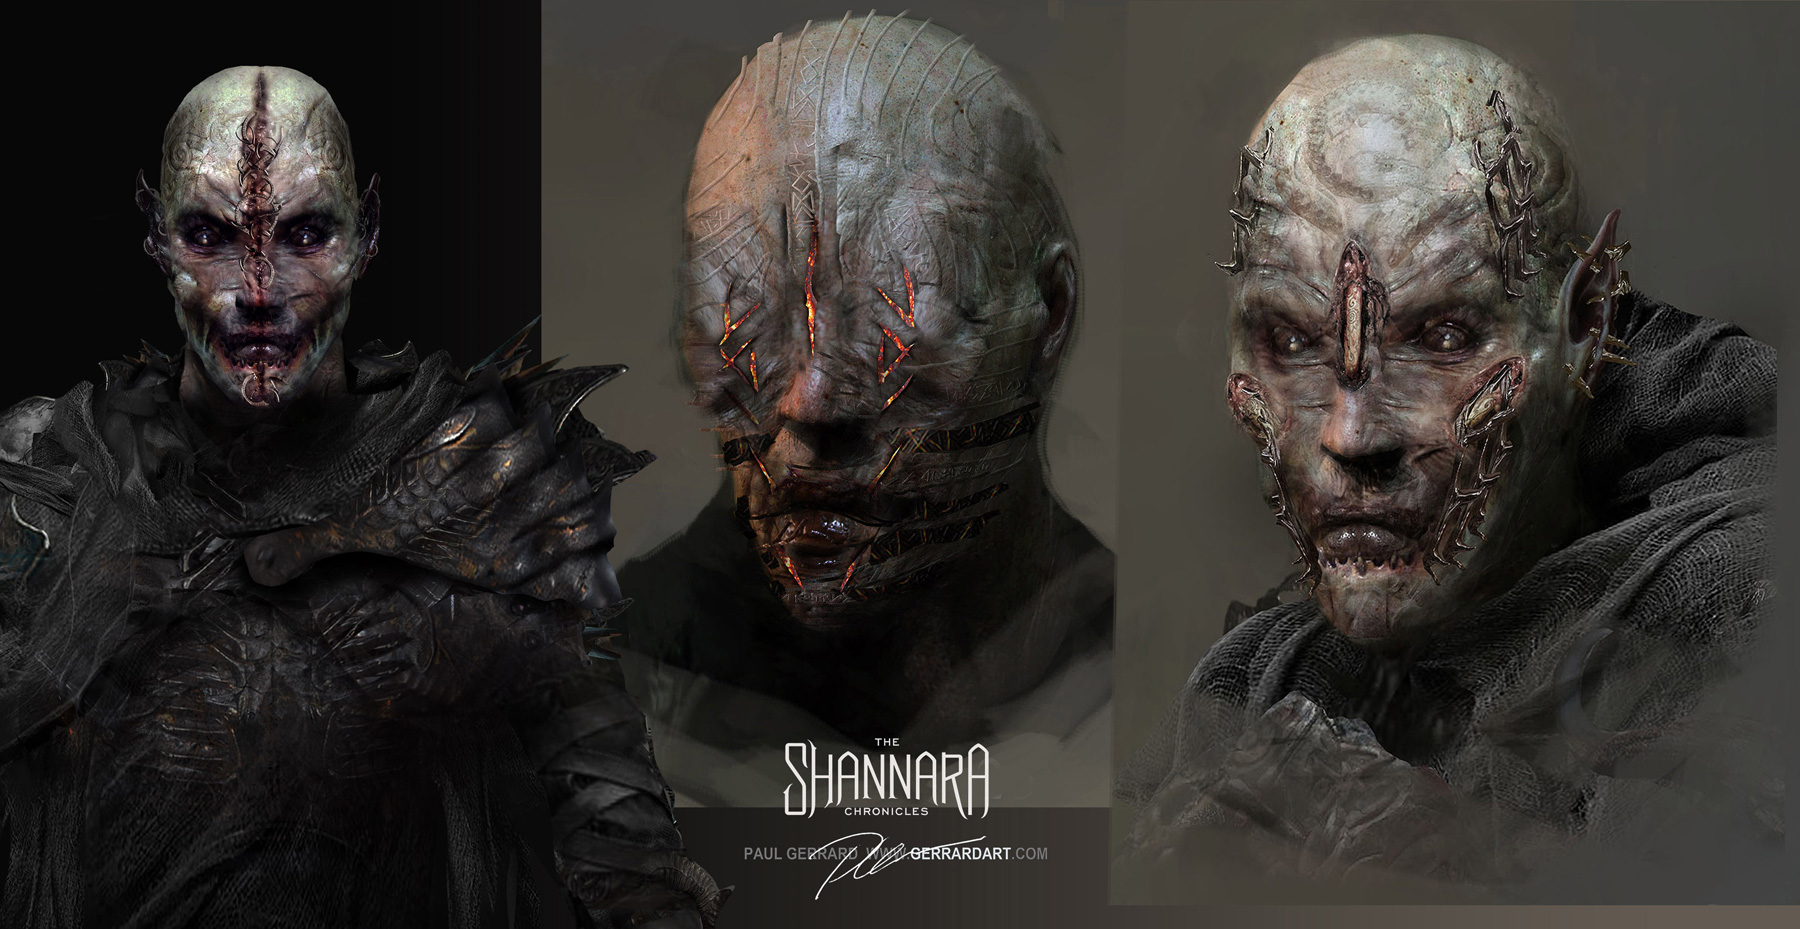 The Shannara Chronicles Concept Art by Paul Gerrard